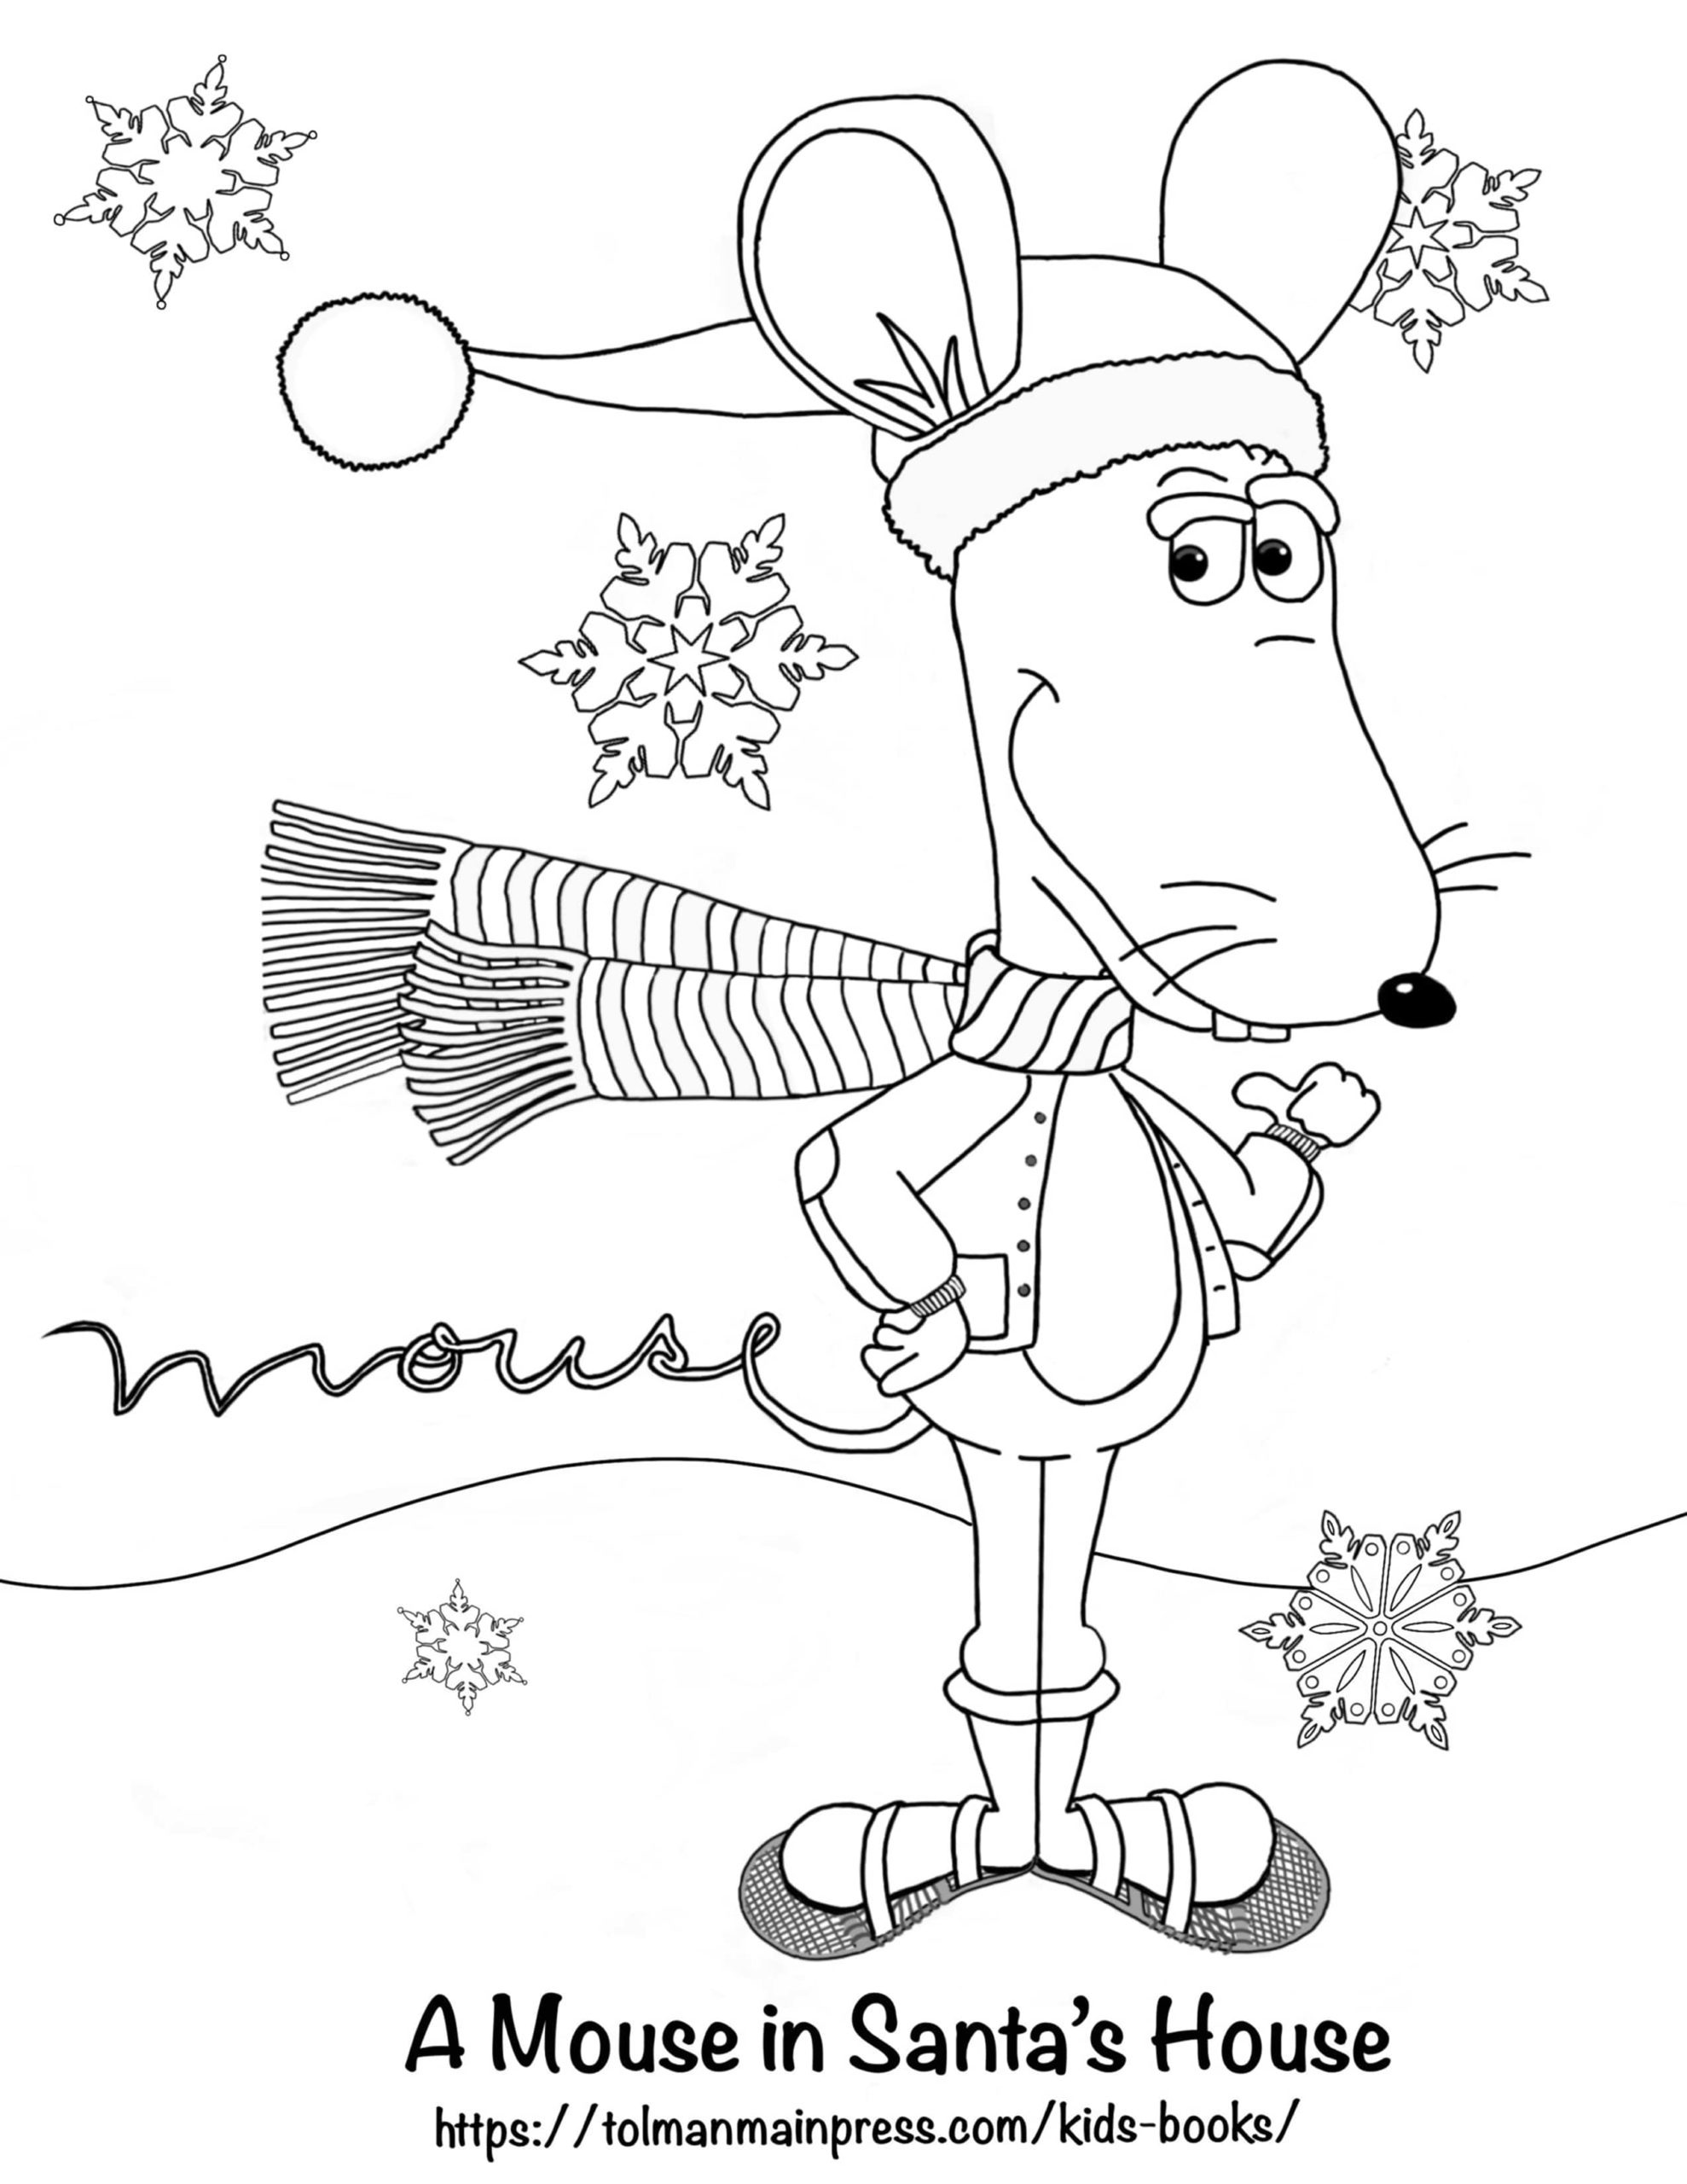 Winter Martin the Mouse Coloring Page - Download Now